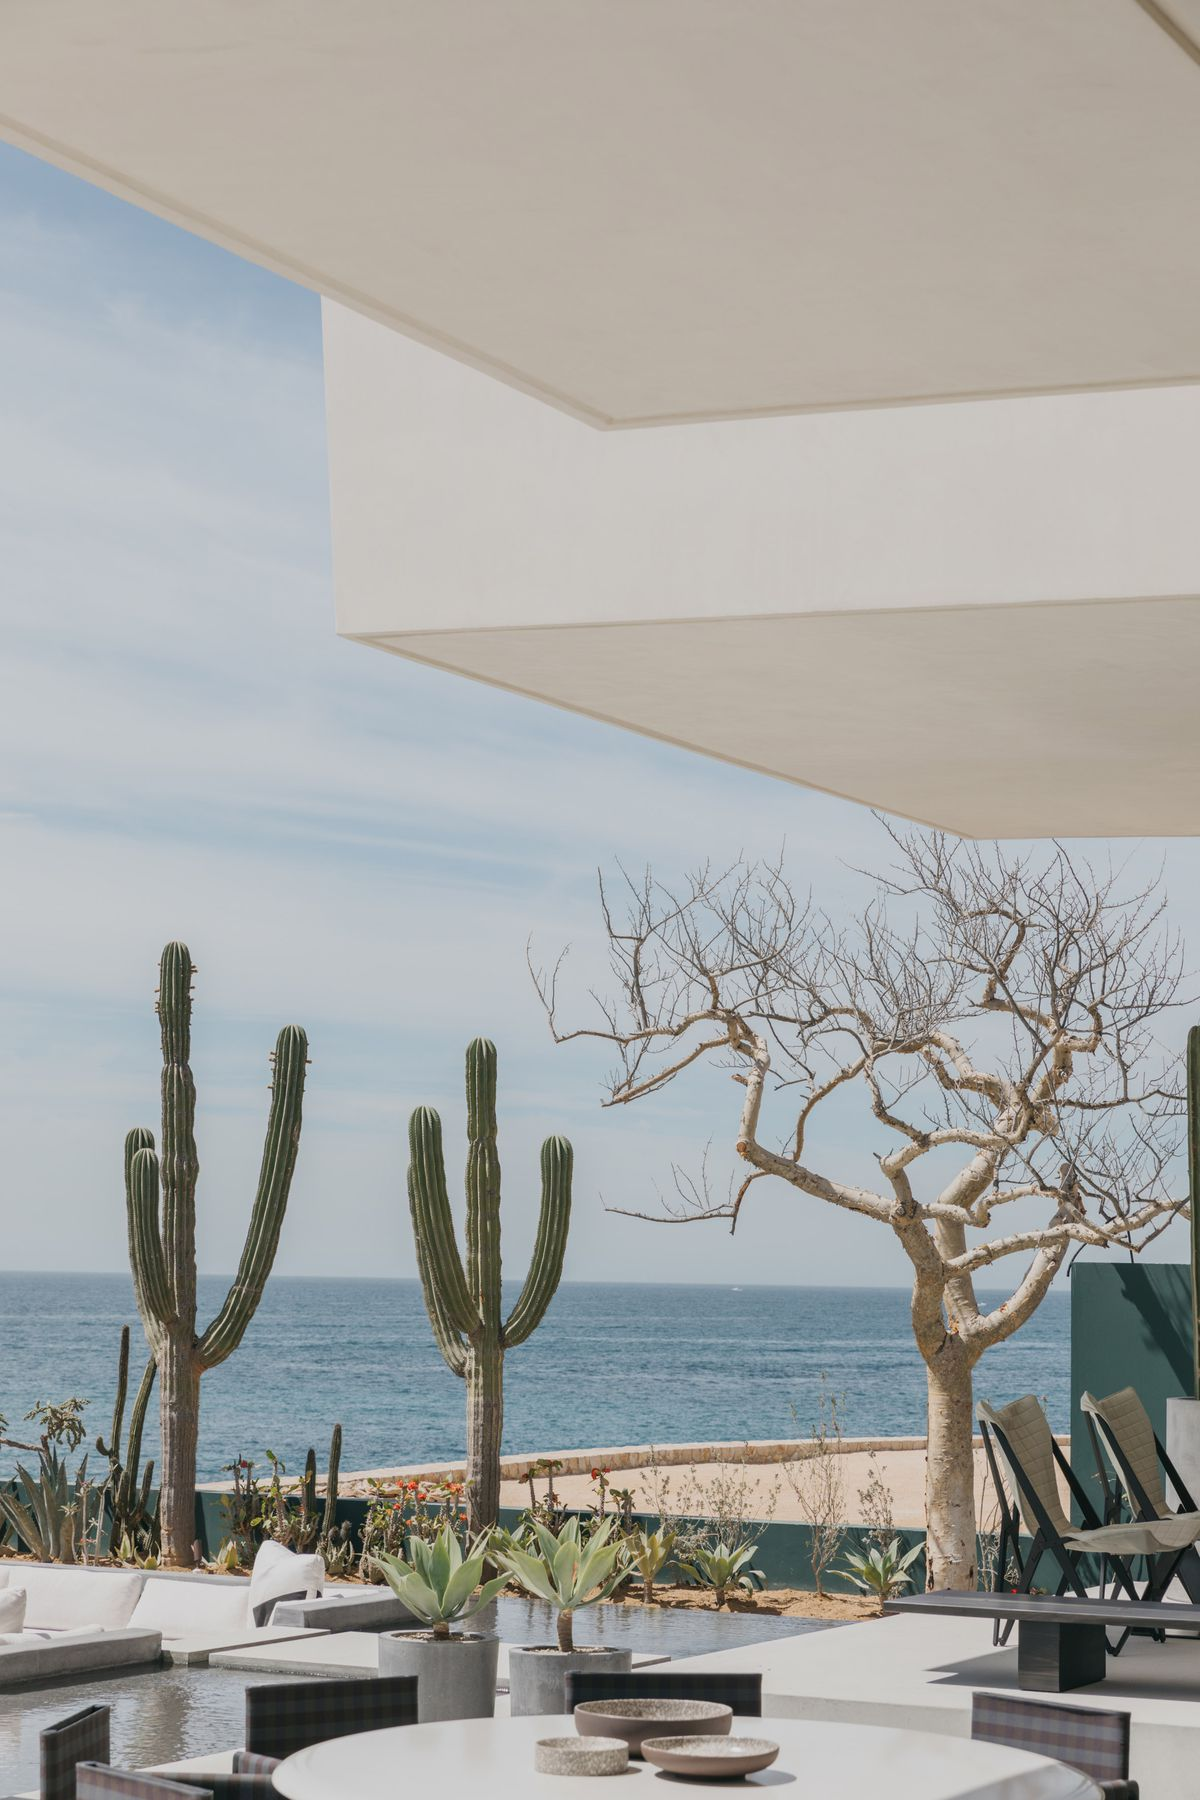 An outdoor terrace overlooks cacti, a tree, and the ocean.